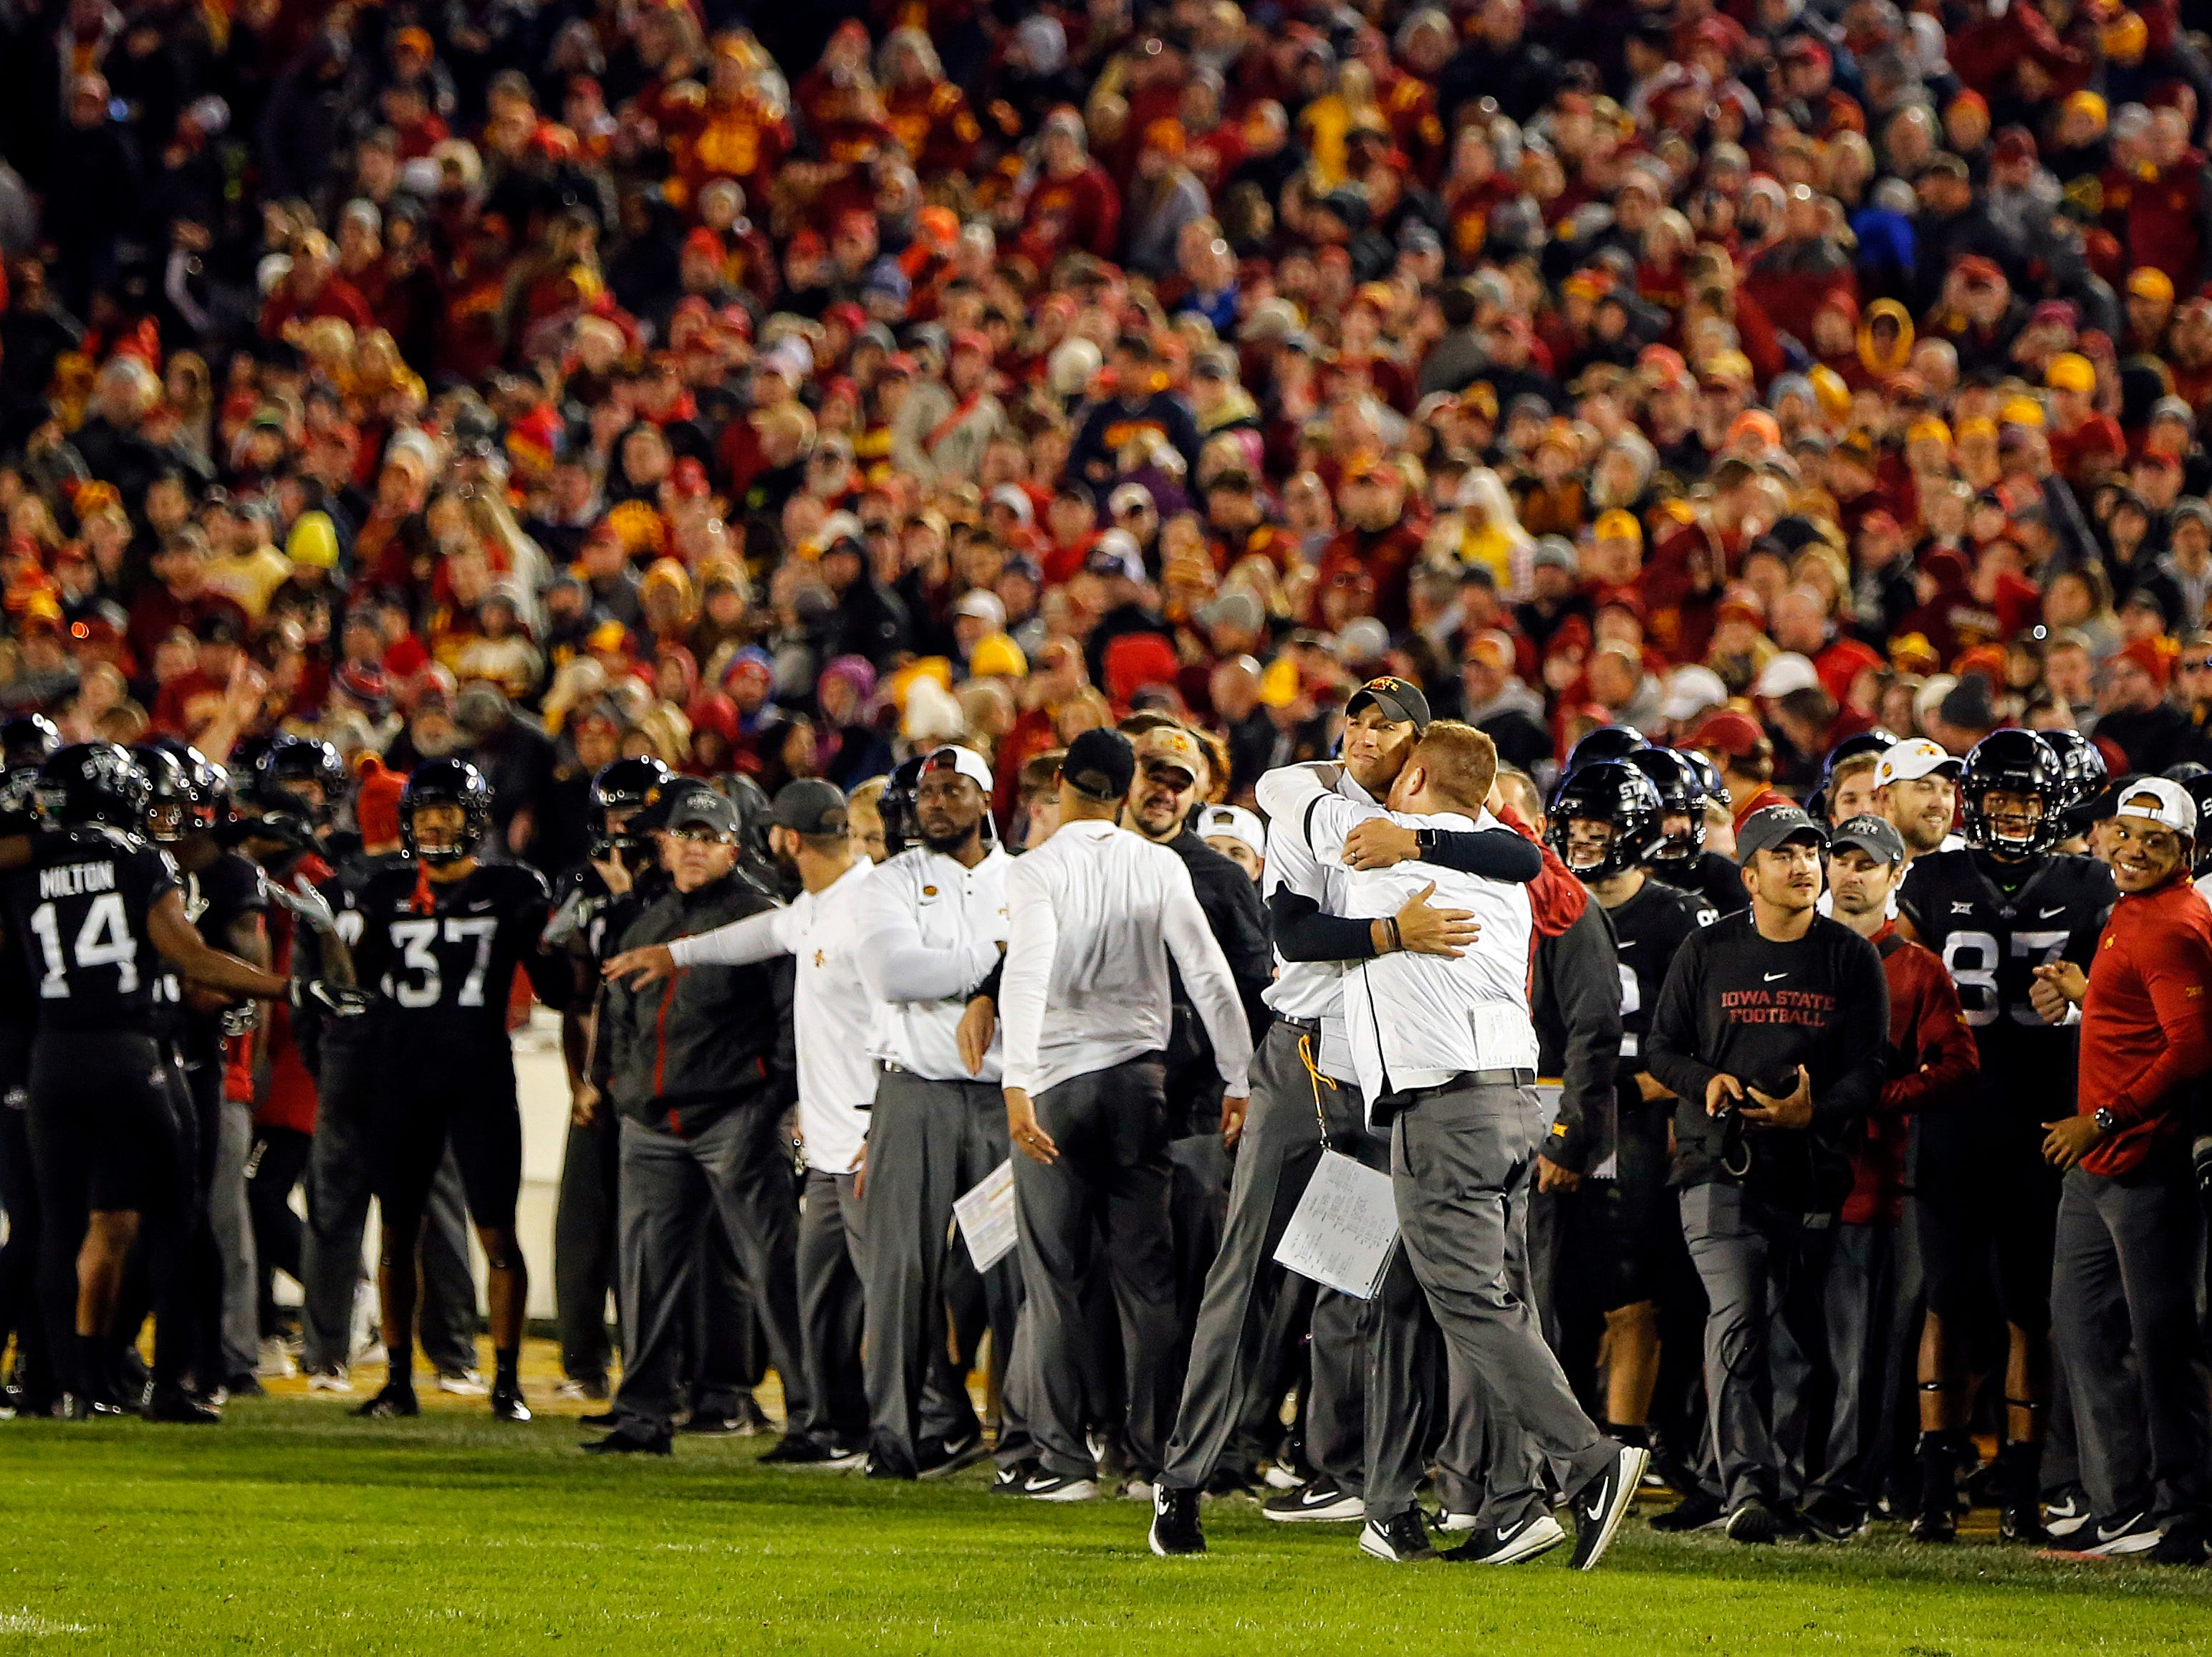 Coach Matt Campbell celebrates during final seconds of the Iowa State West Virginia game at Jack Trice Stadium Saturday, Oct. 13, 2018.